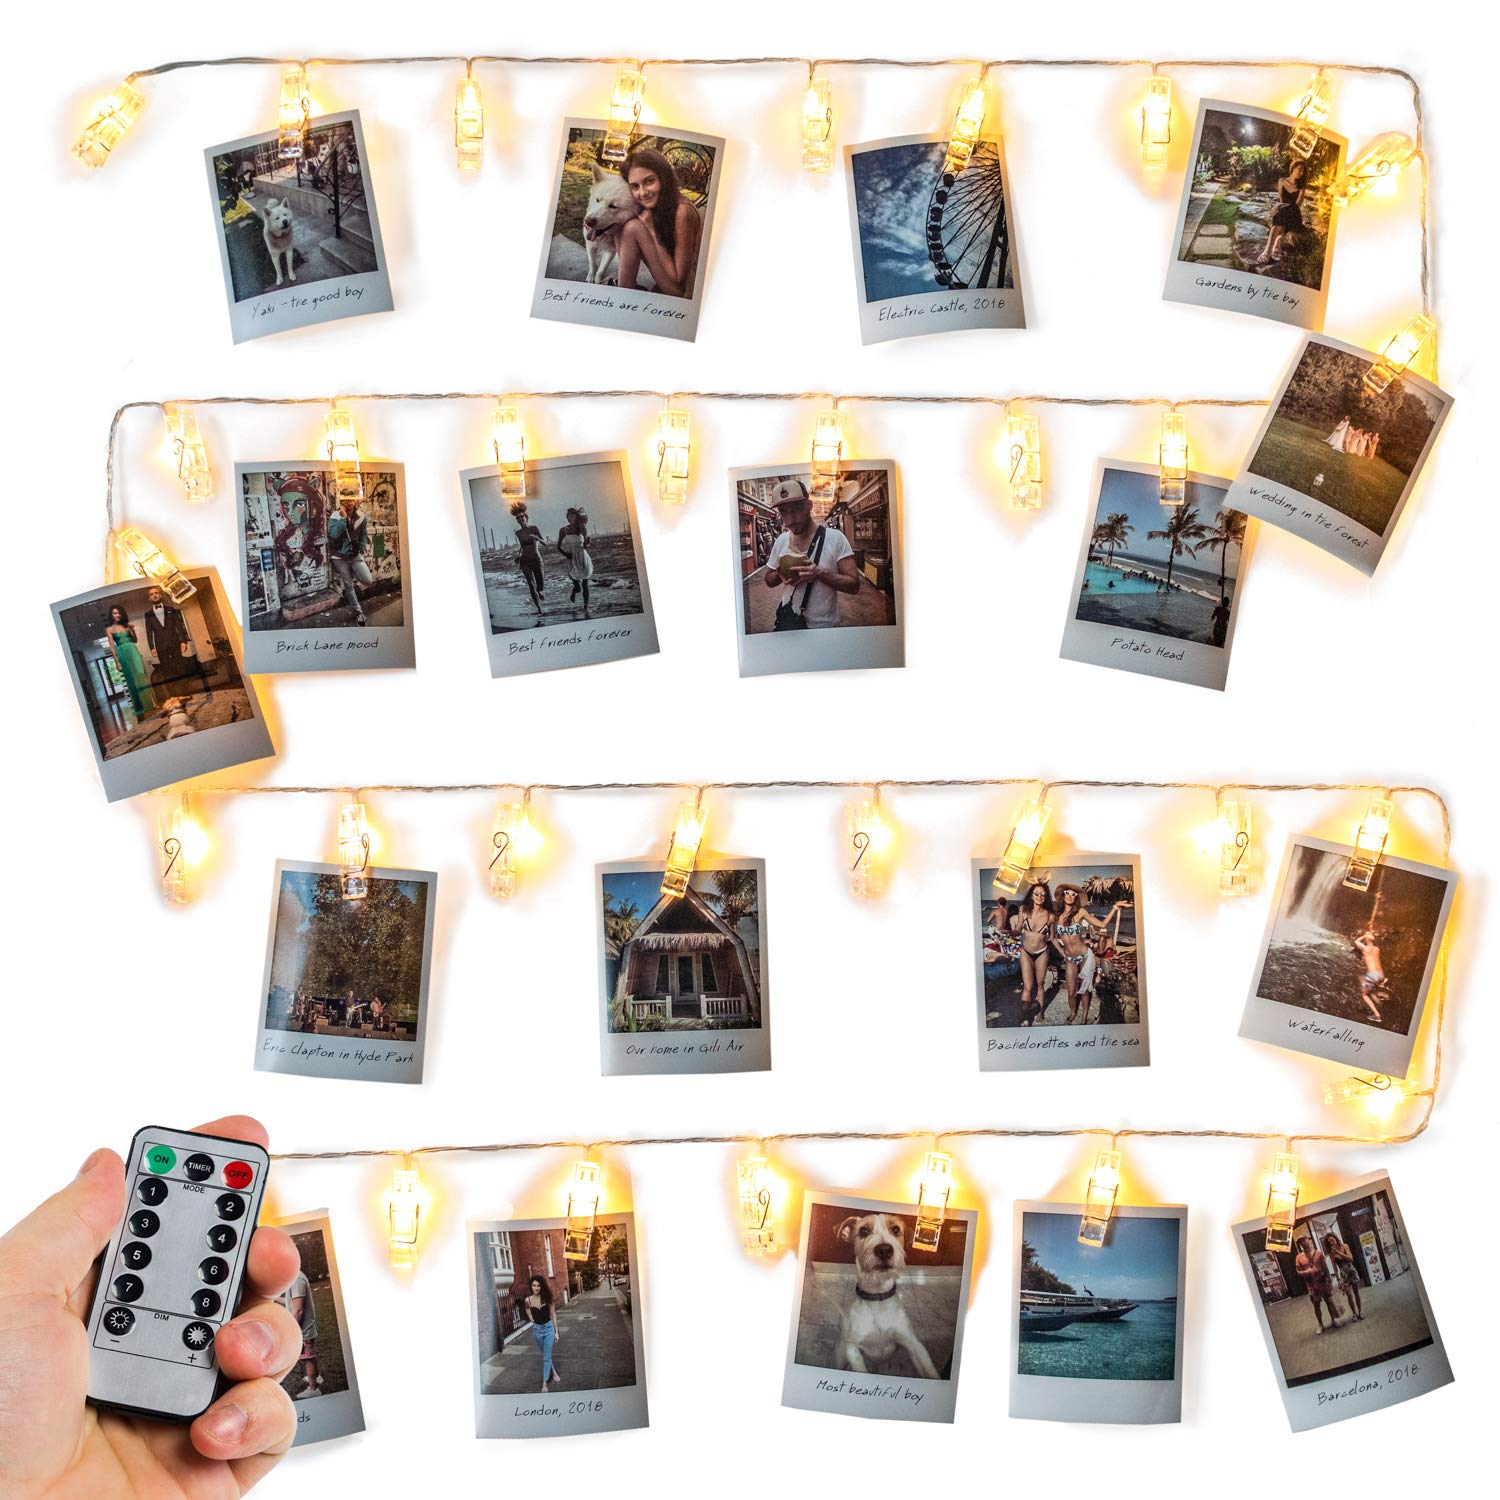 Mind-glowing Photo Clip String Lights (16.4ft), 40 LED & Remote - Battery Powered, Warm White Fairy Lights - Hanging Polaroid Pictures as Bedroom Wall Decor - Couples Anniversary Gift for Her